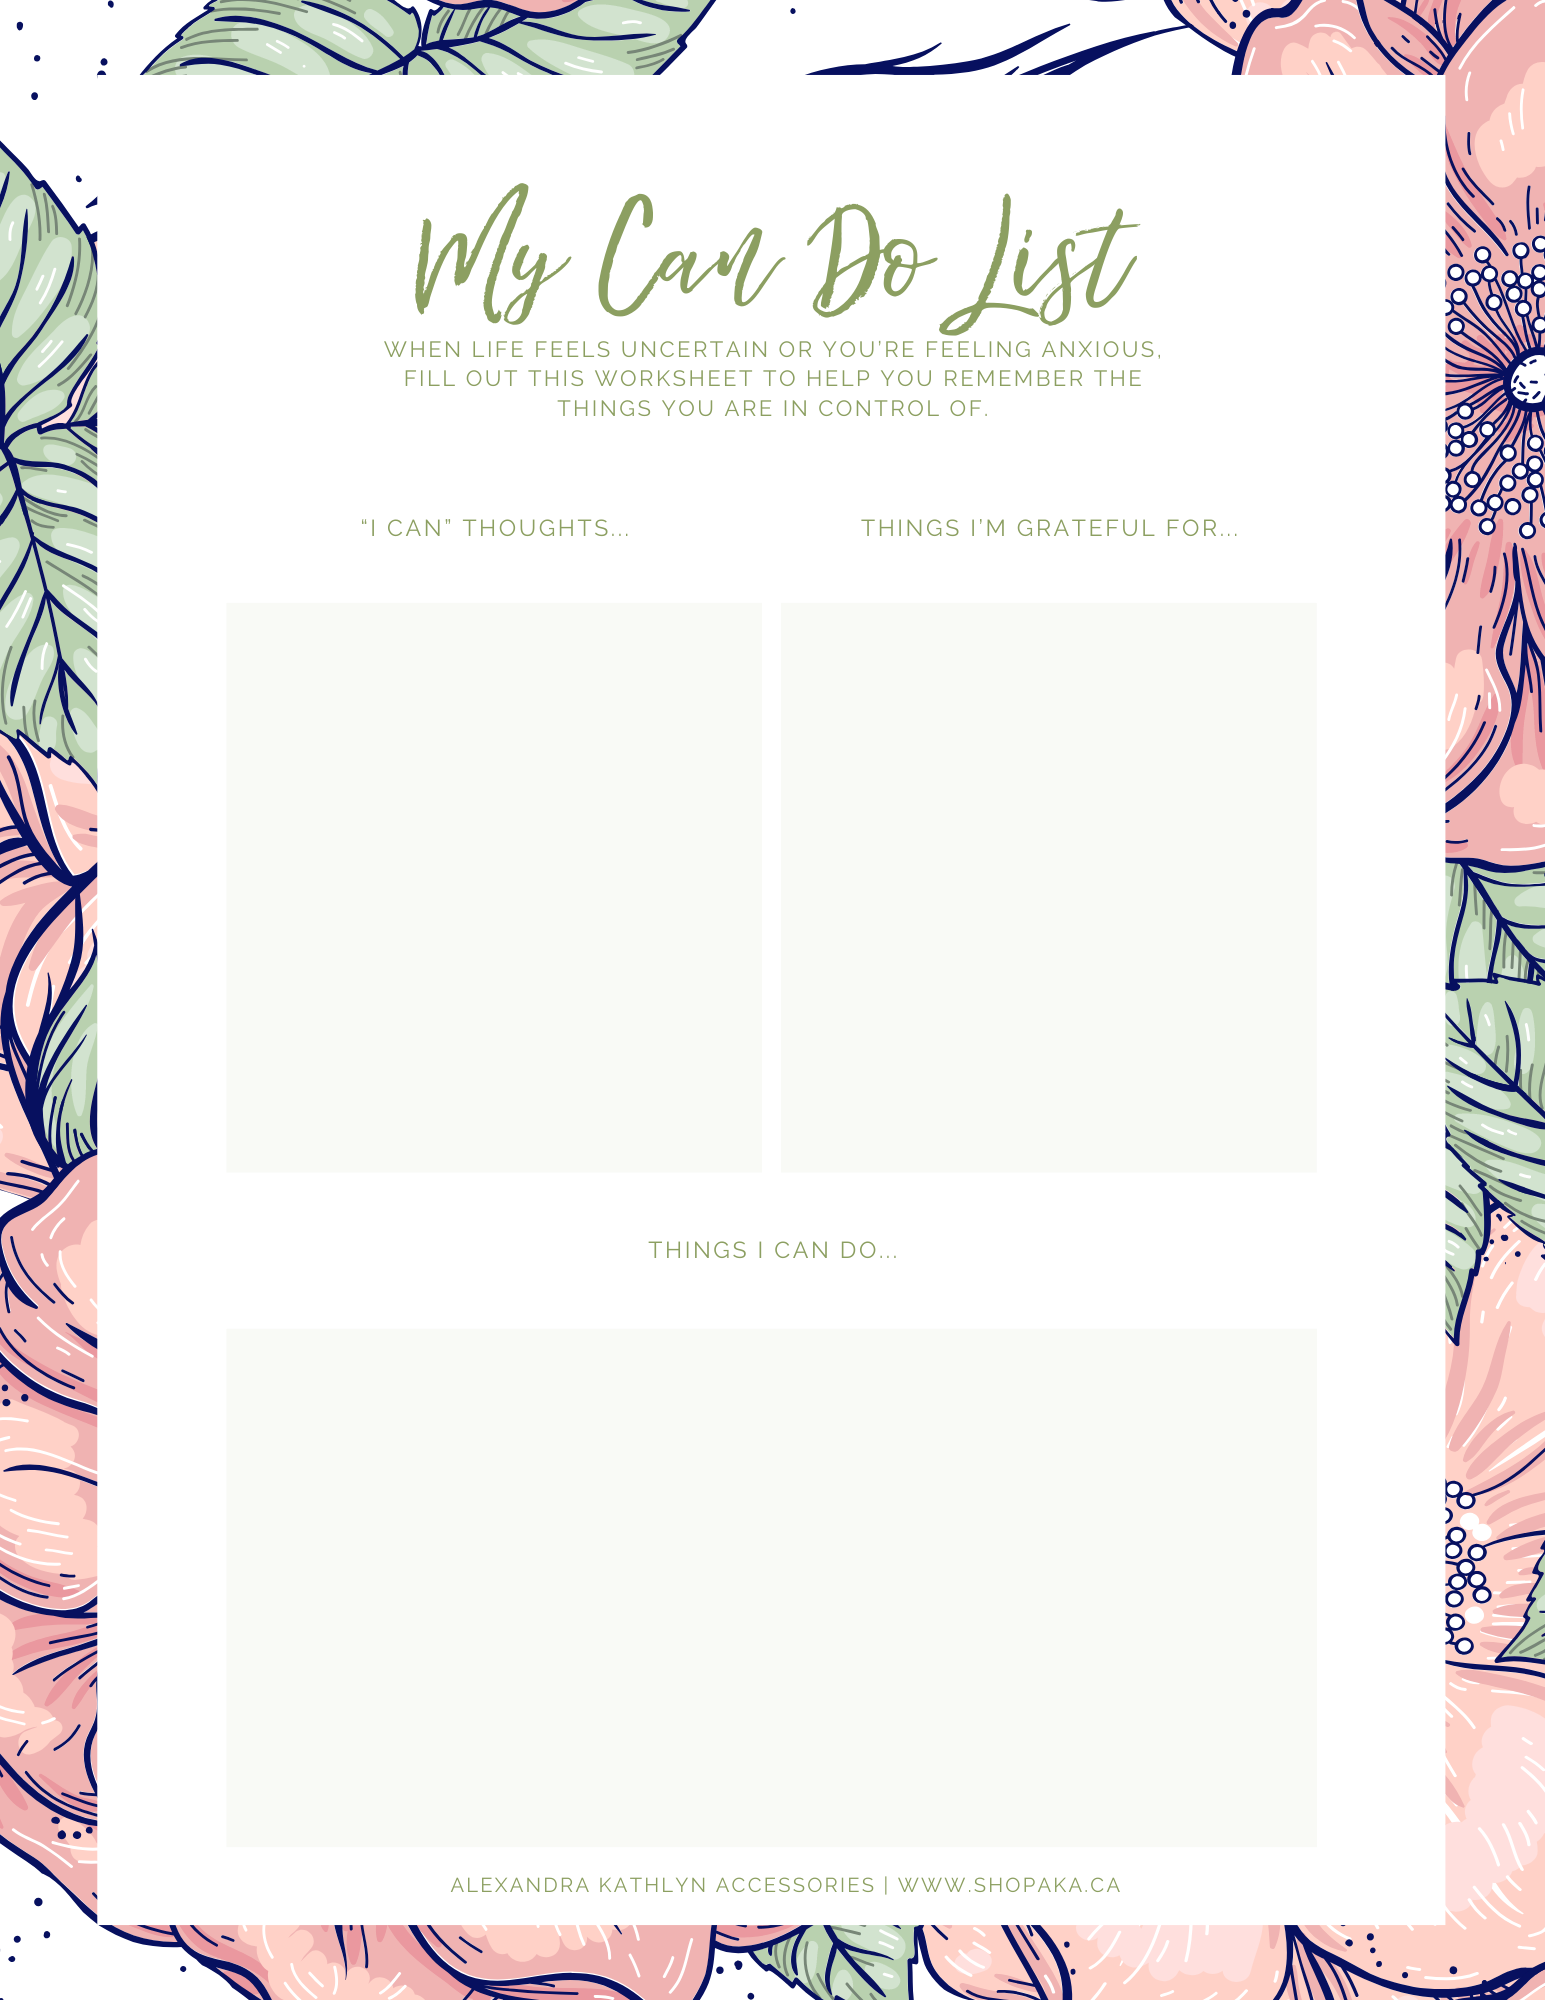 Alex Kathlyn Accessories Can Do List Worksheet